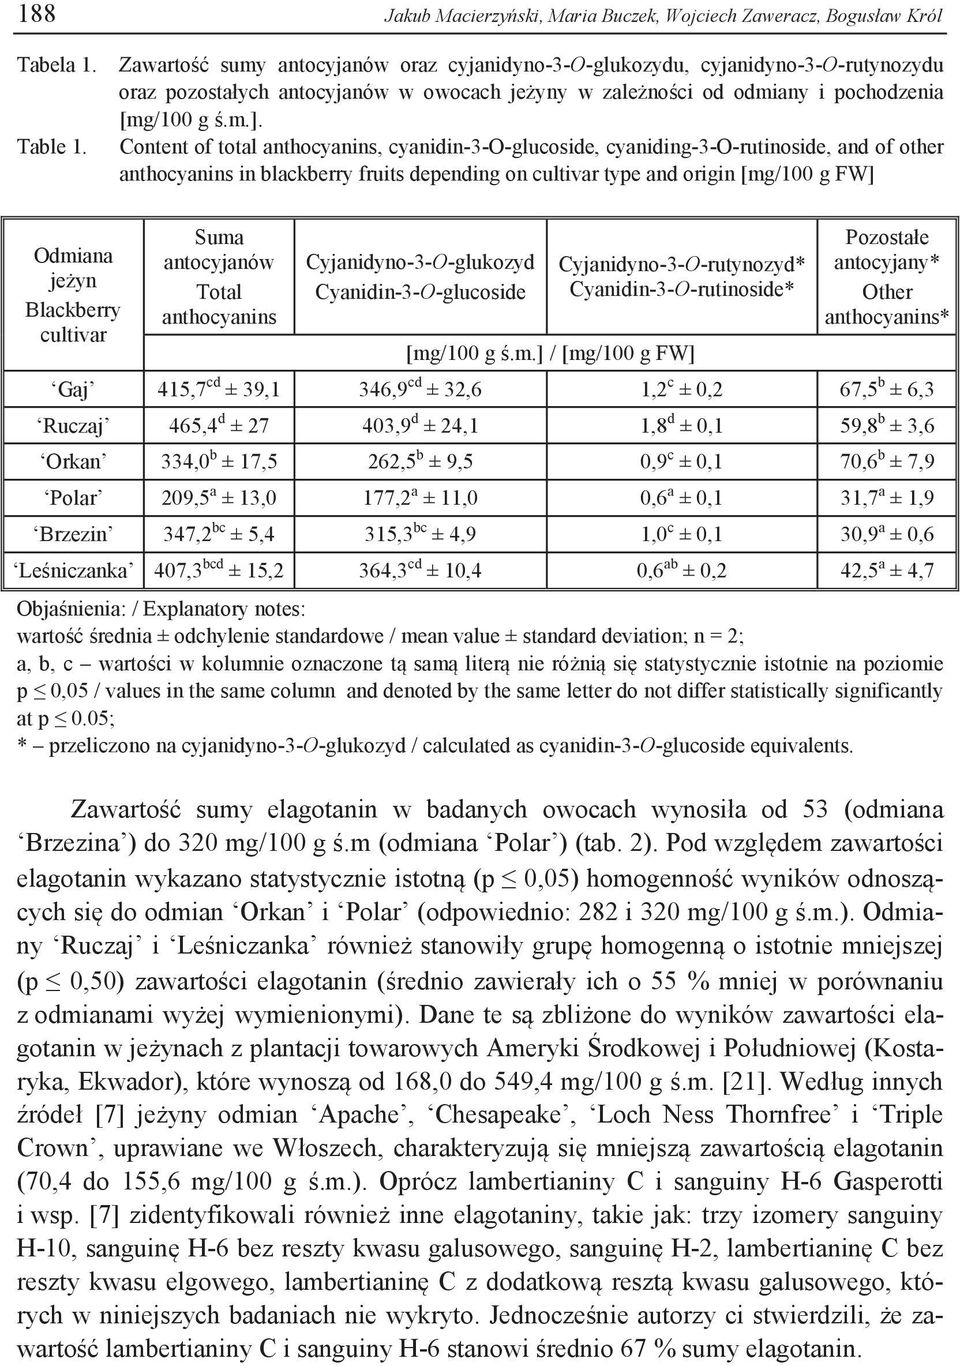 Content of total anthocyanins, cyanidin-3-o-glucoside, cyaniding-3-o-rutinoside, and of other anthocyanins in blackberry fruits depending on cultivar type and origin [mg/100 g FW] Odmiana jeżyn